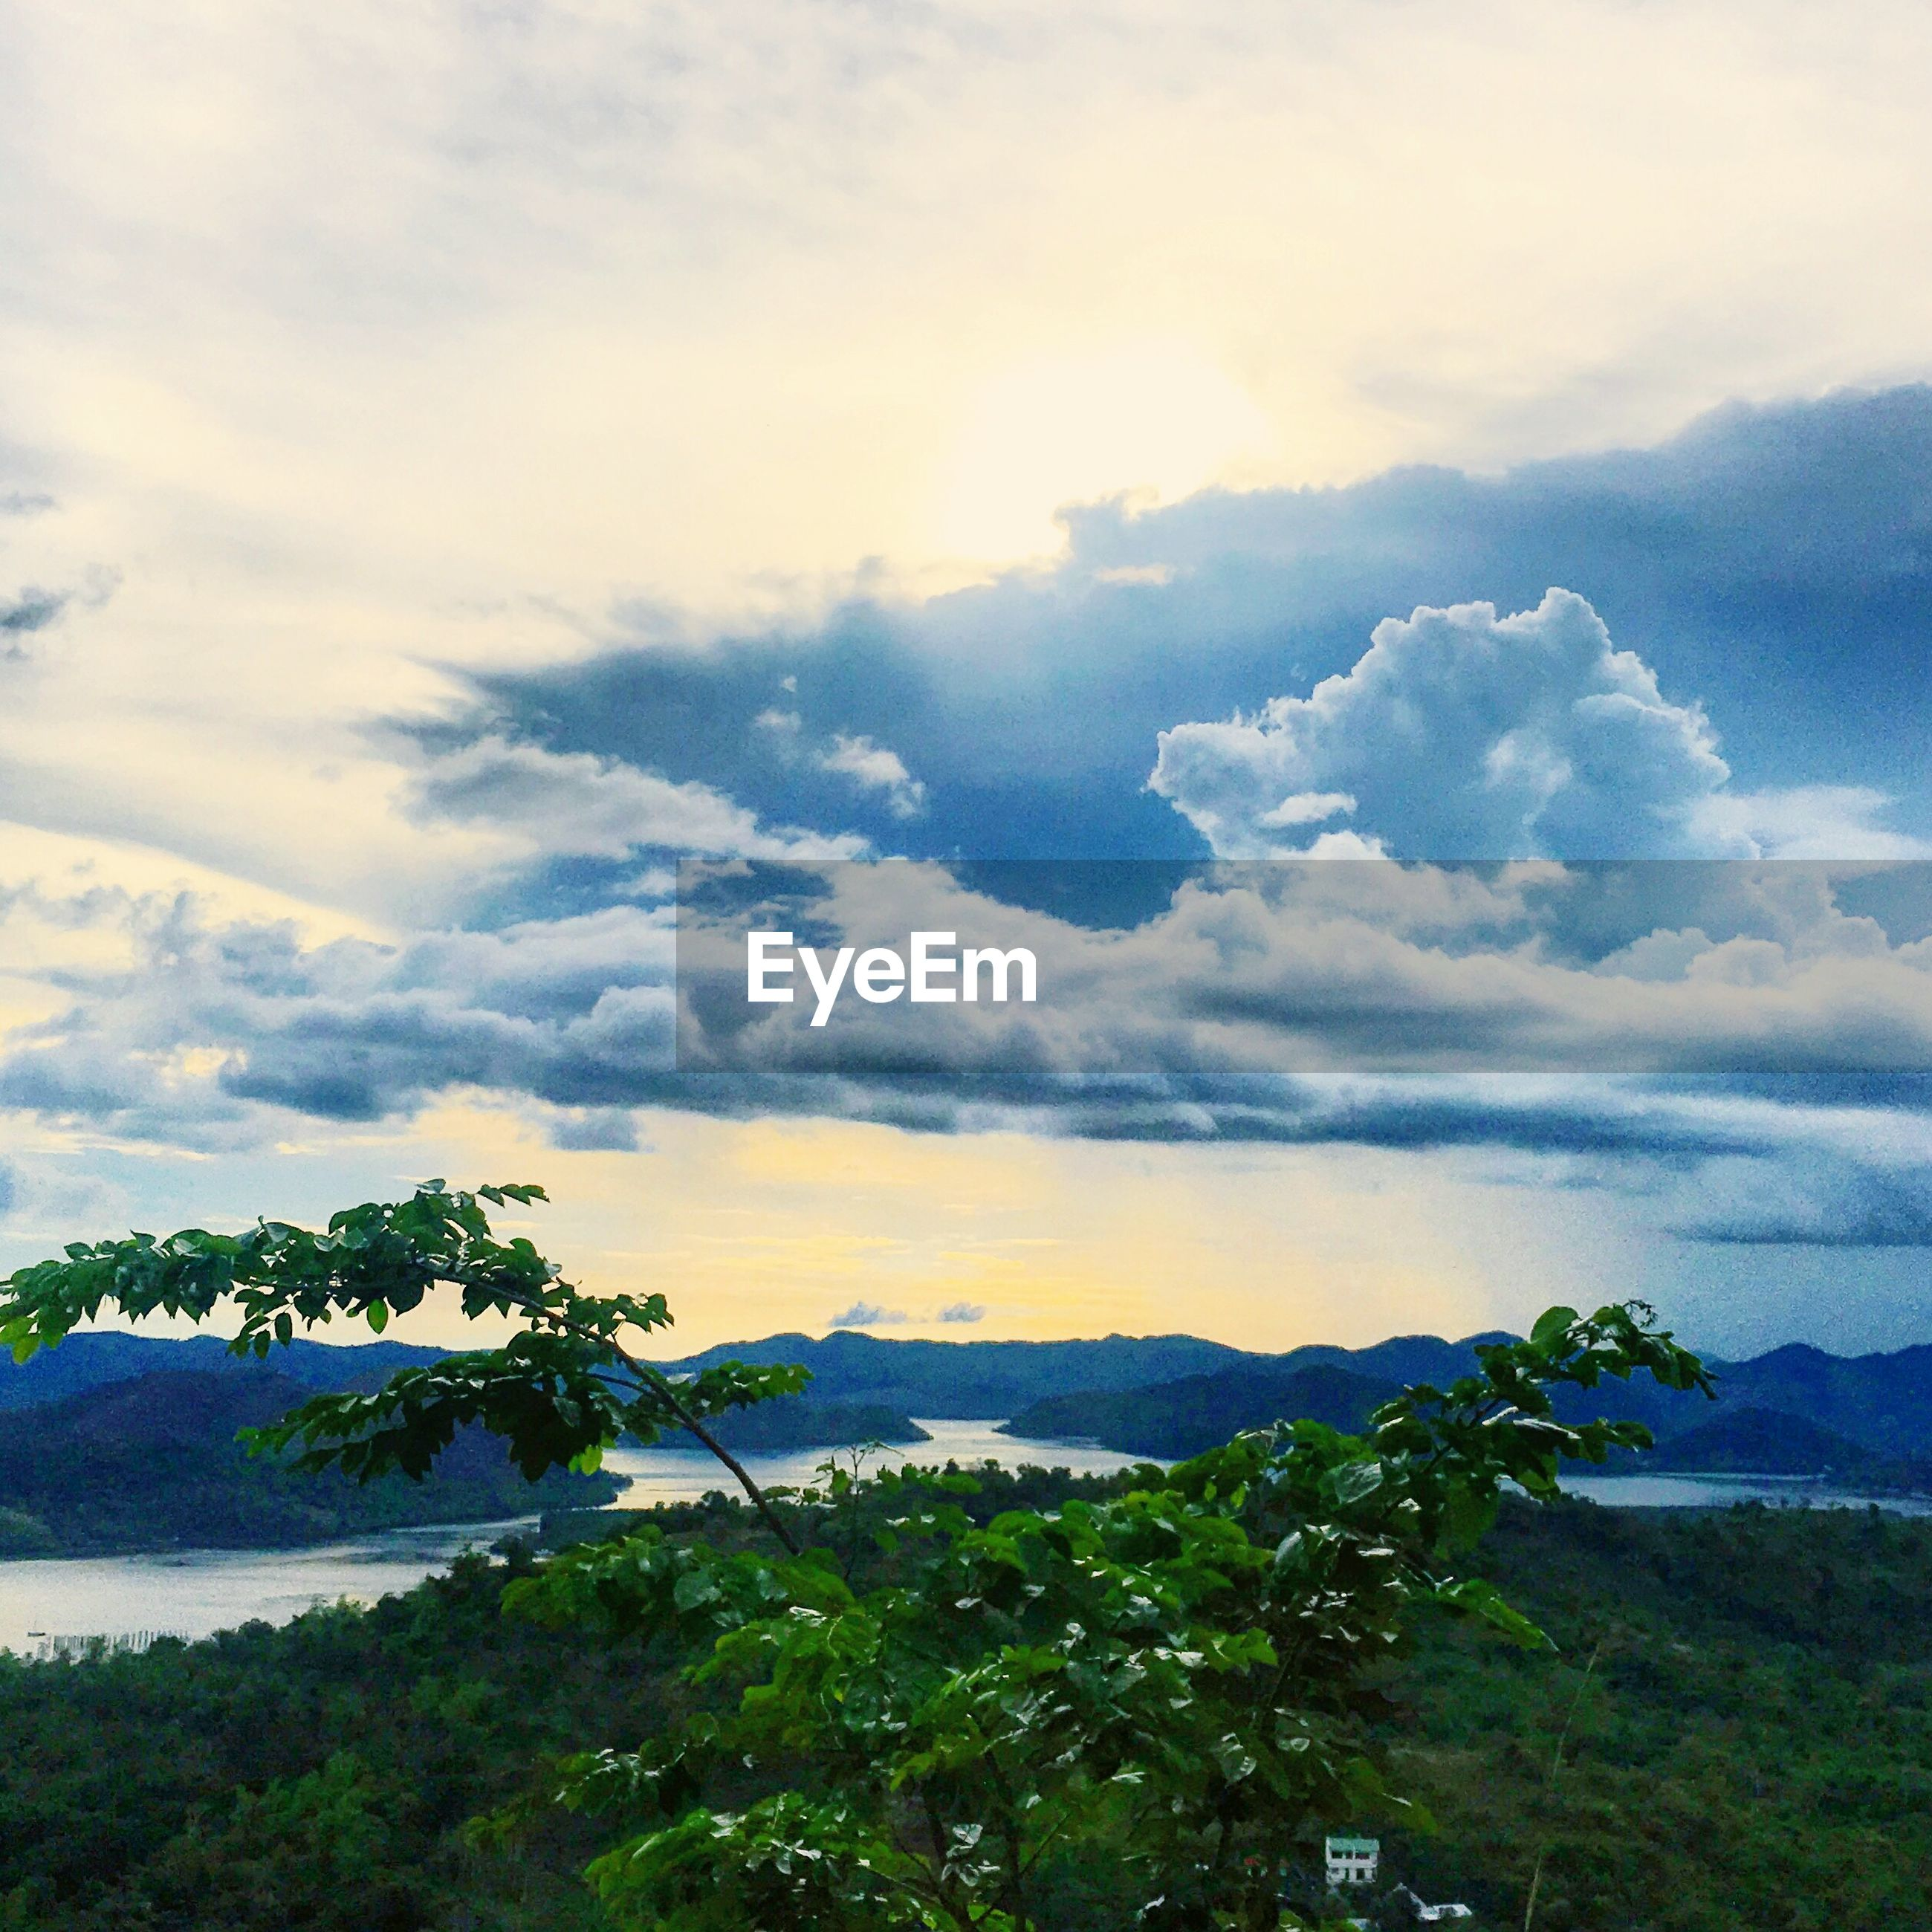 sky, cloud - sky, scenics, tranquility, tranquil scene, beauty in nature, nature, no people, idyllic, outdoors, tree, day, plant, growth, landscape, mountain, water